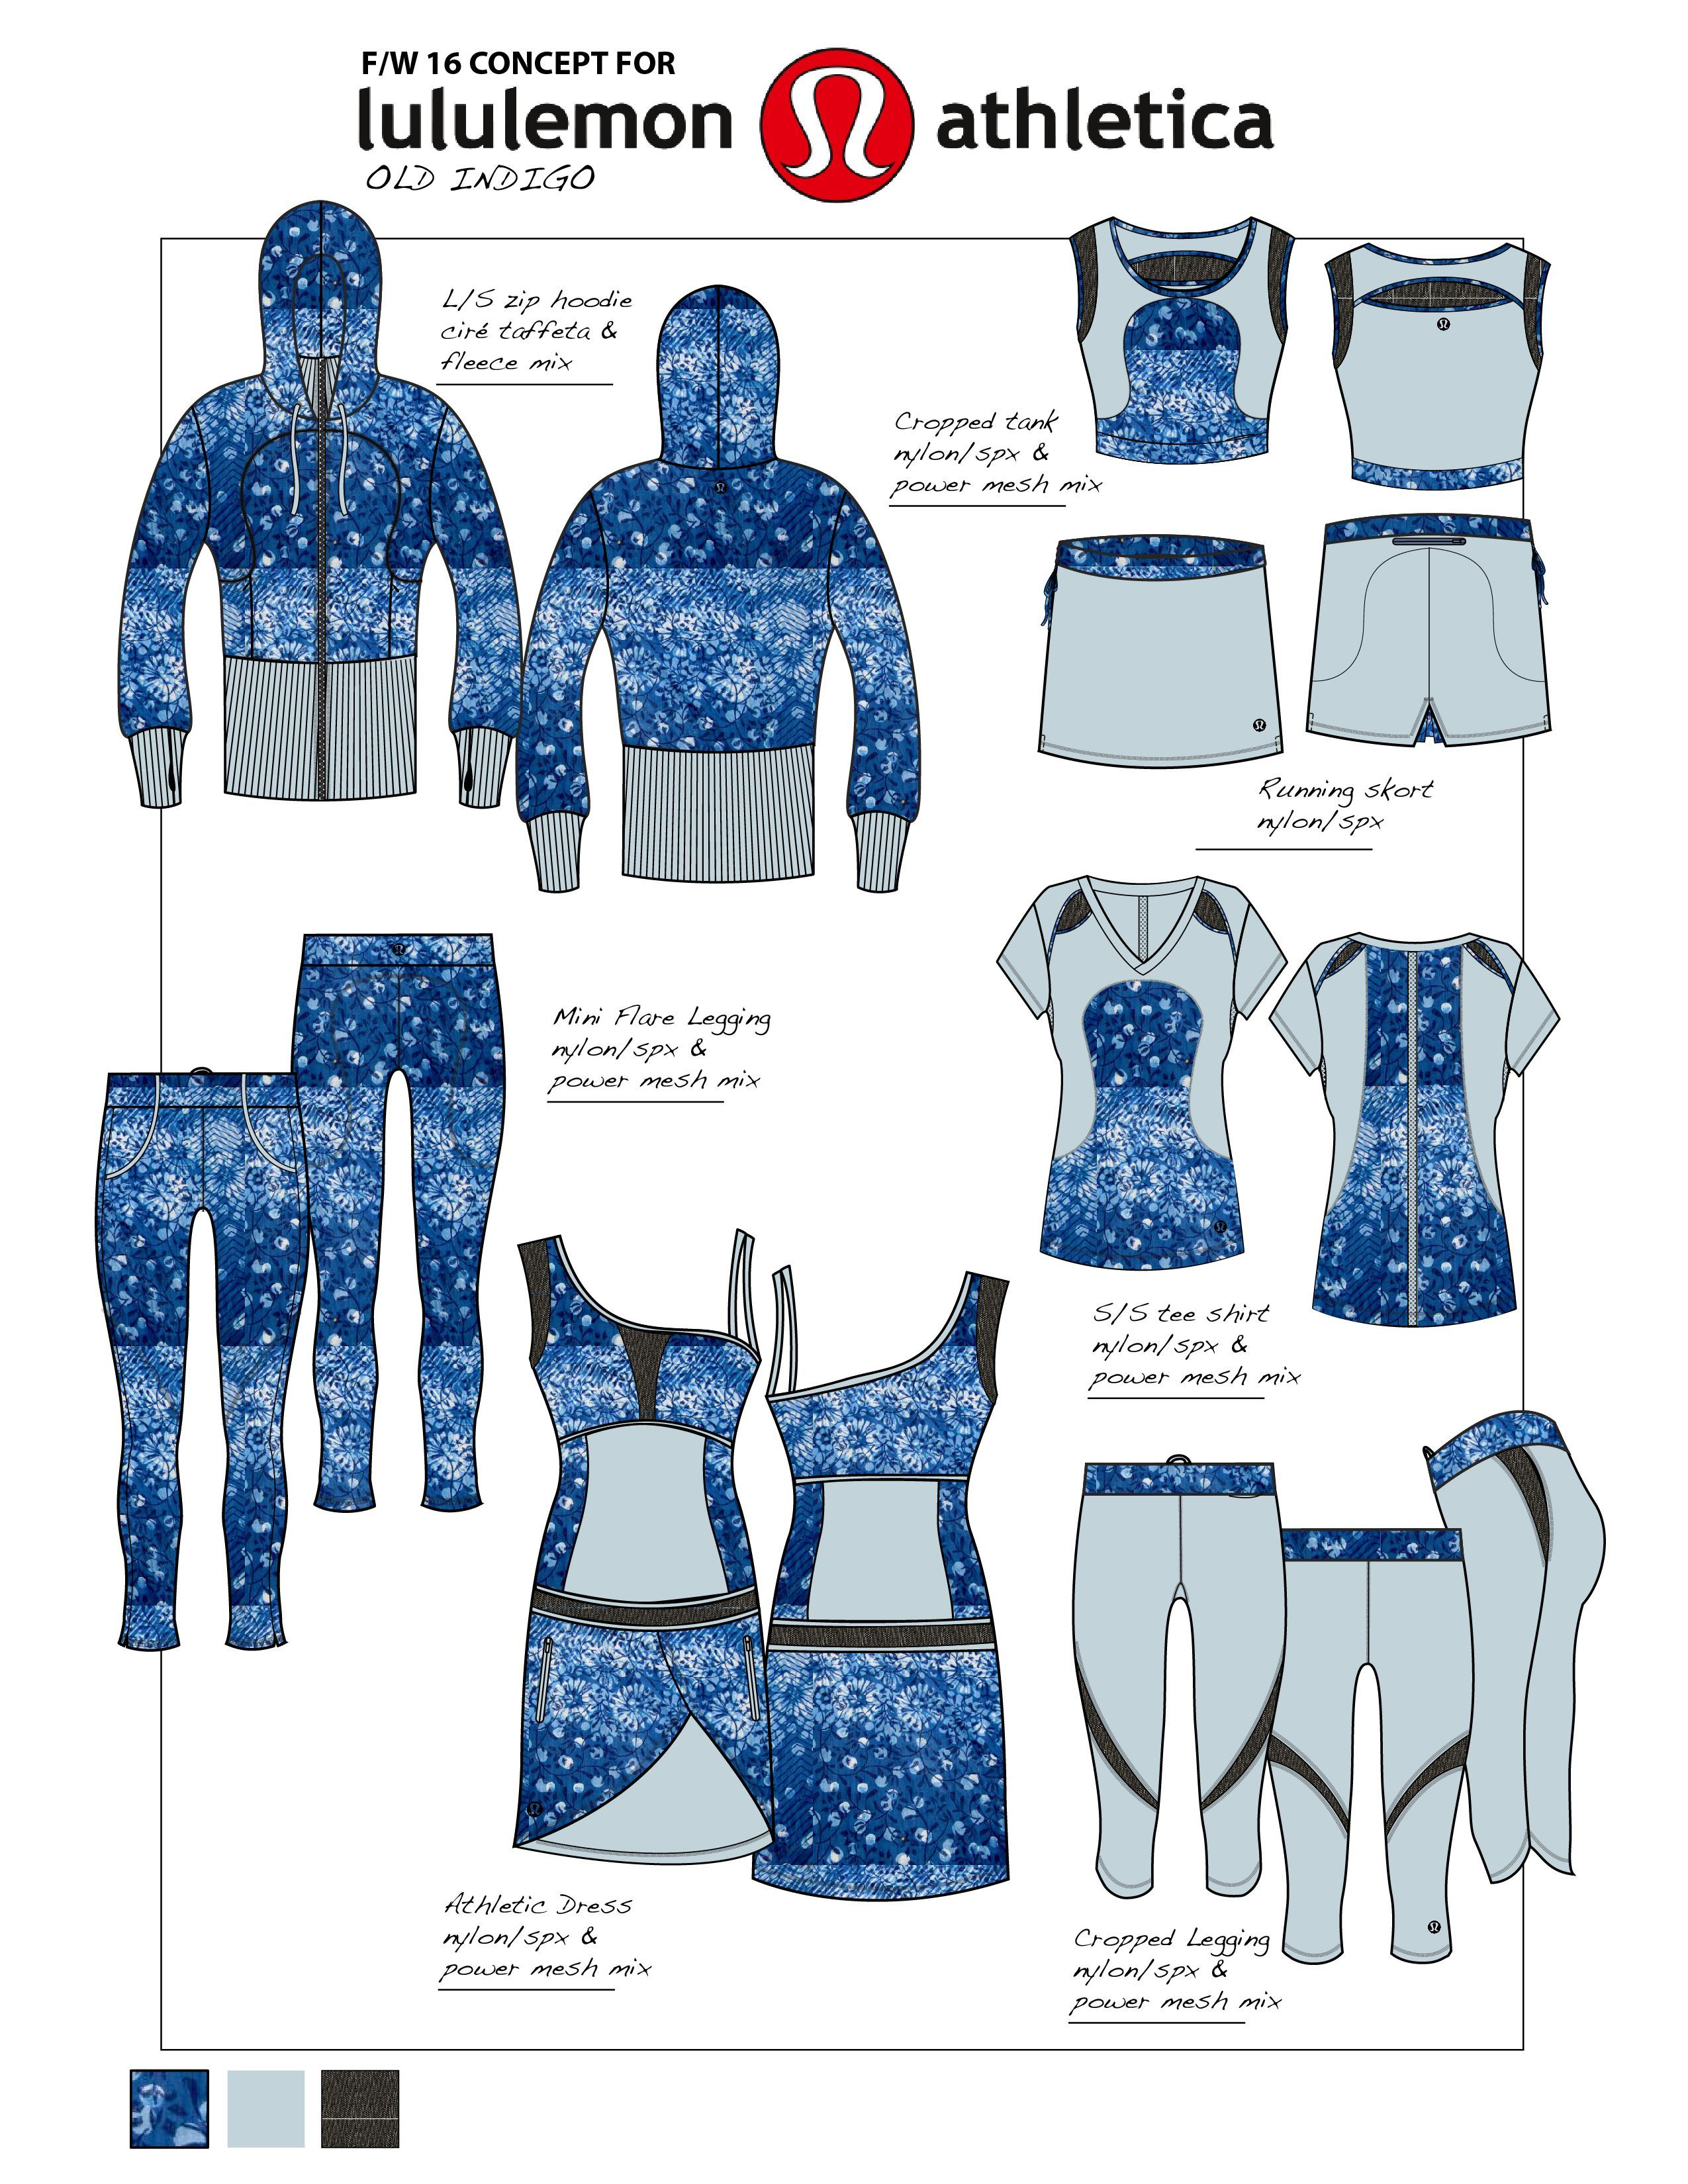 Women S Apparel Projects For Different Companies Established And Start Ups Includes Outerwear Active Wear For Women Sports Fashion Design Sportswear Fashion